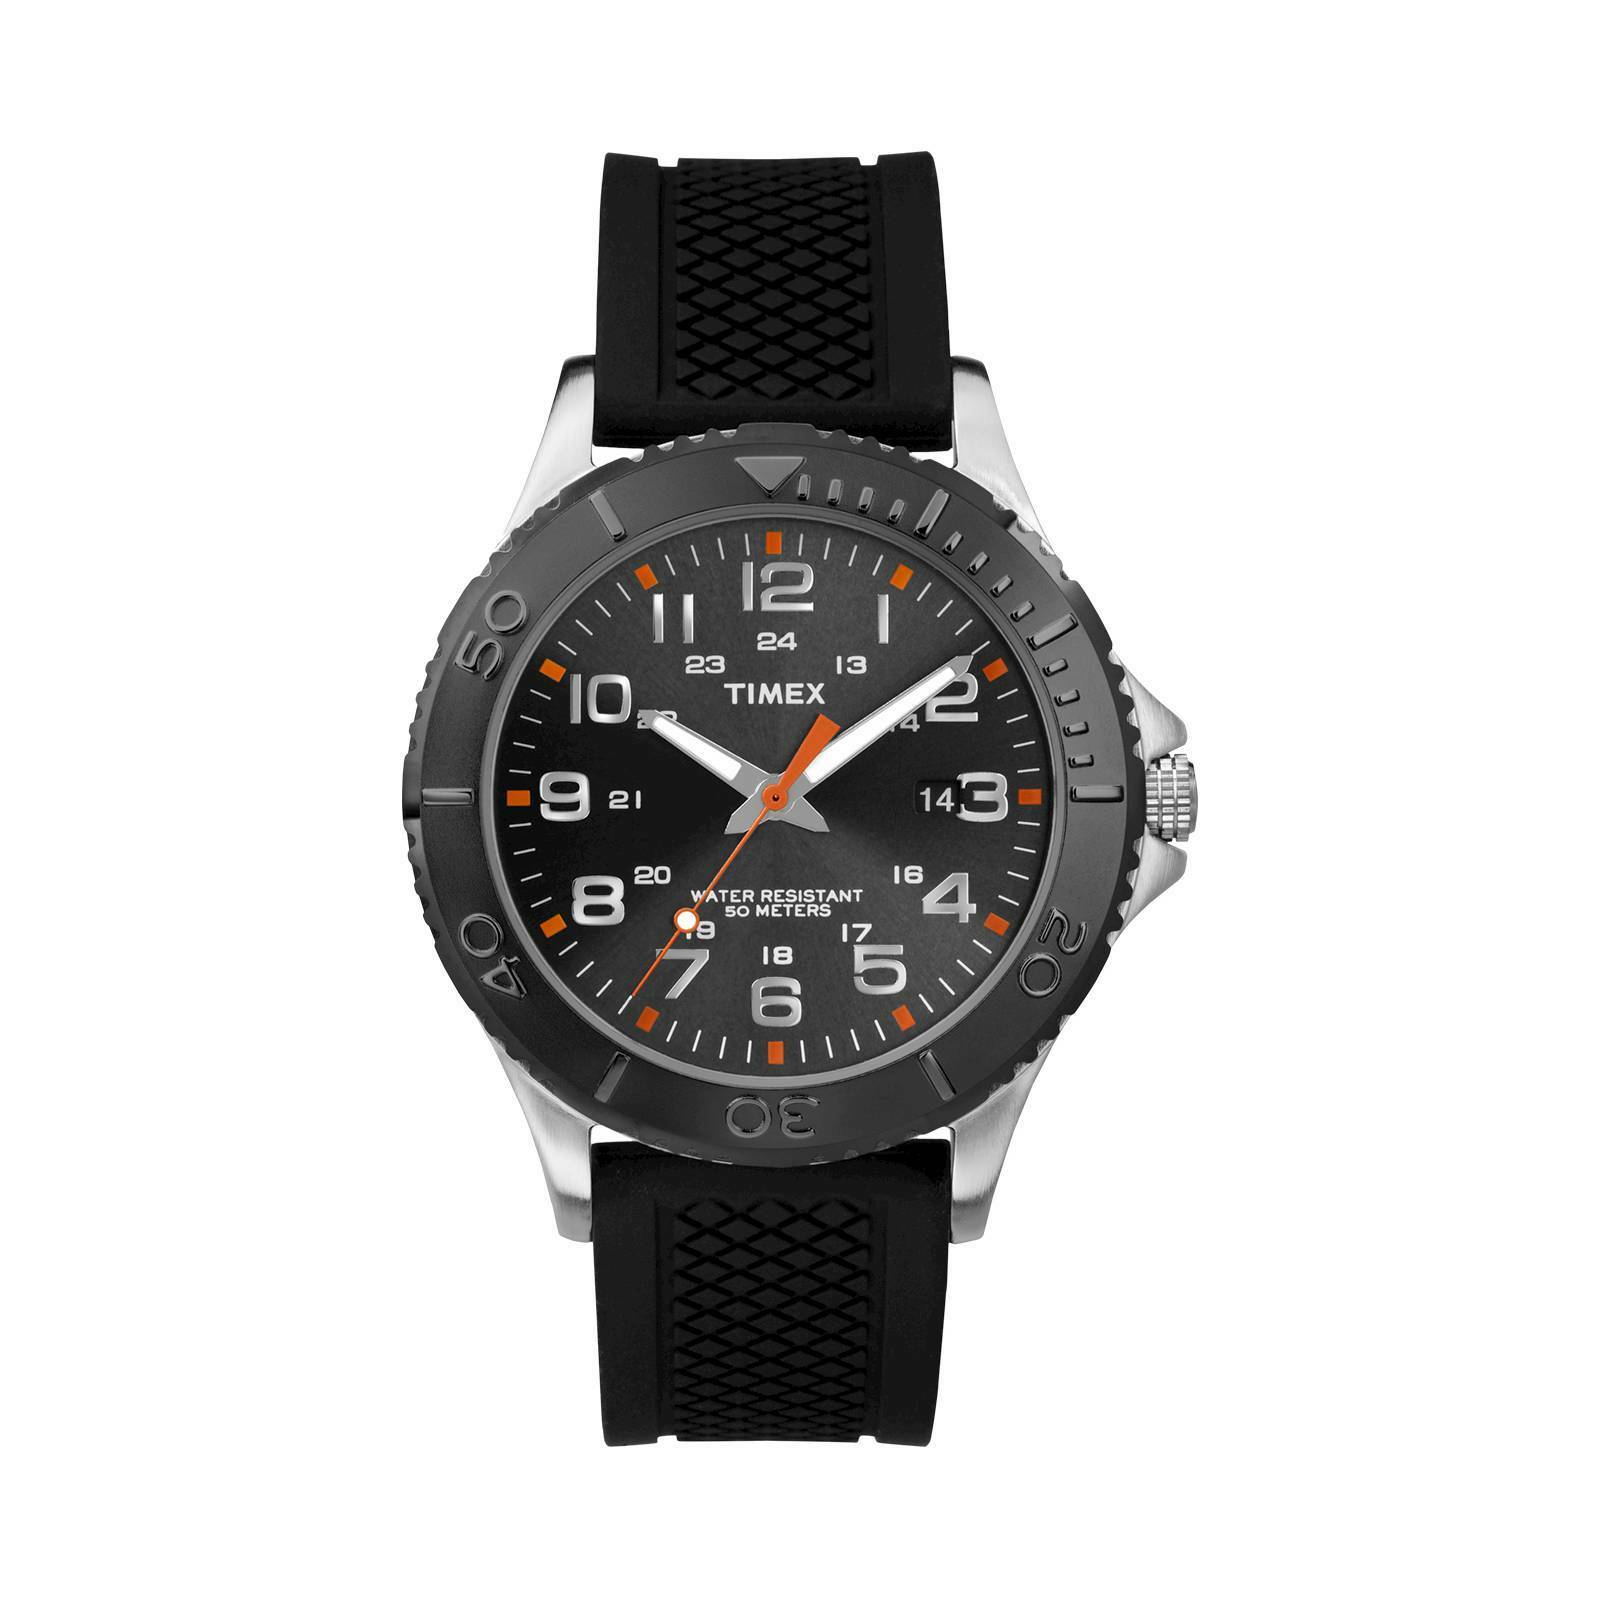 mechanical timexes found due enthusiasts on recent years timex j to names dirt relentless under part lead caught timax cheap have like young gear with crew watches the vintage brand full patrol collaborating s in for